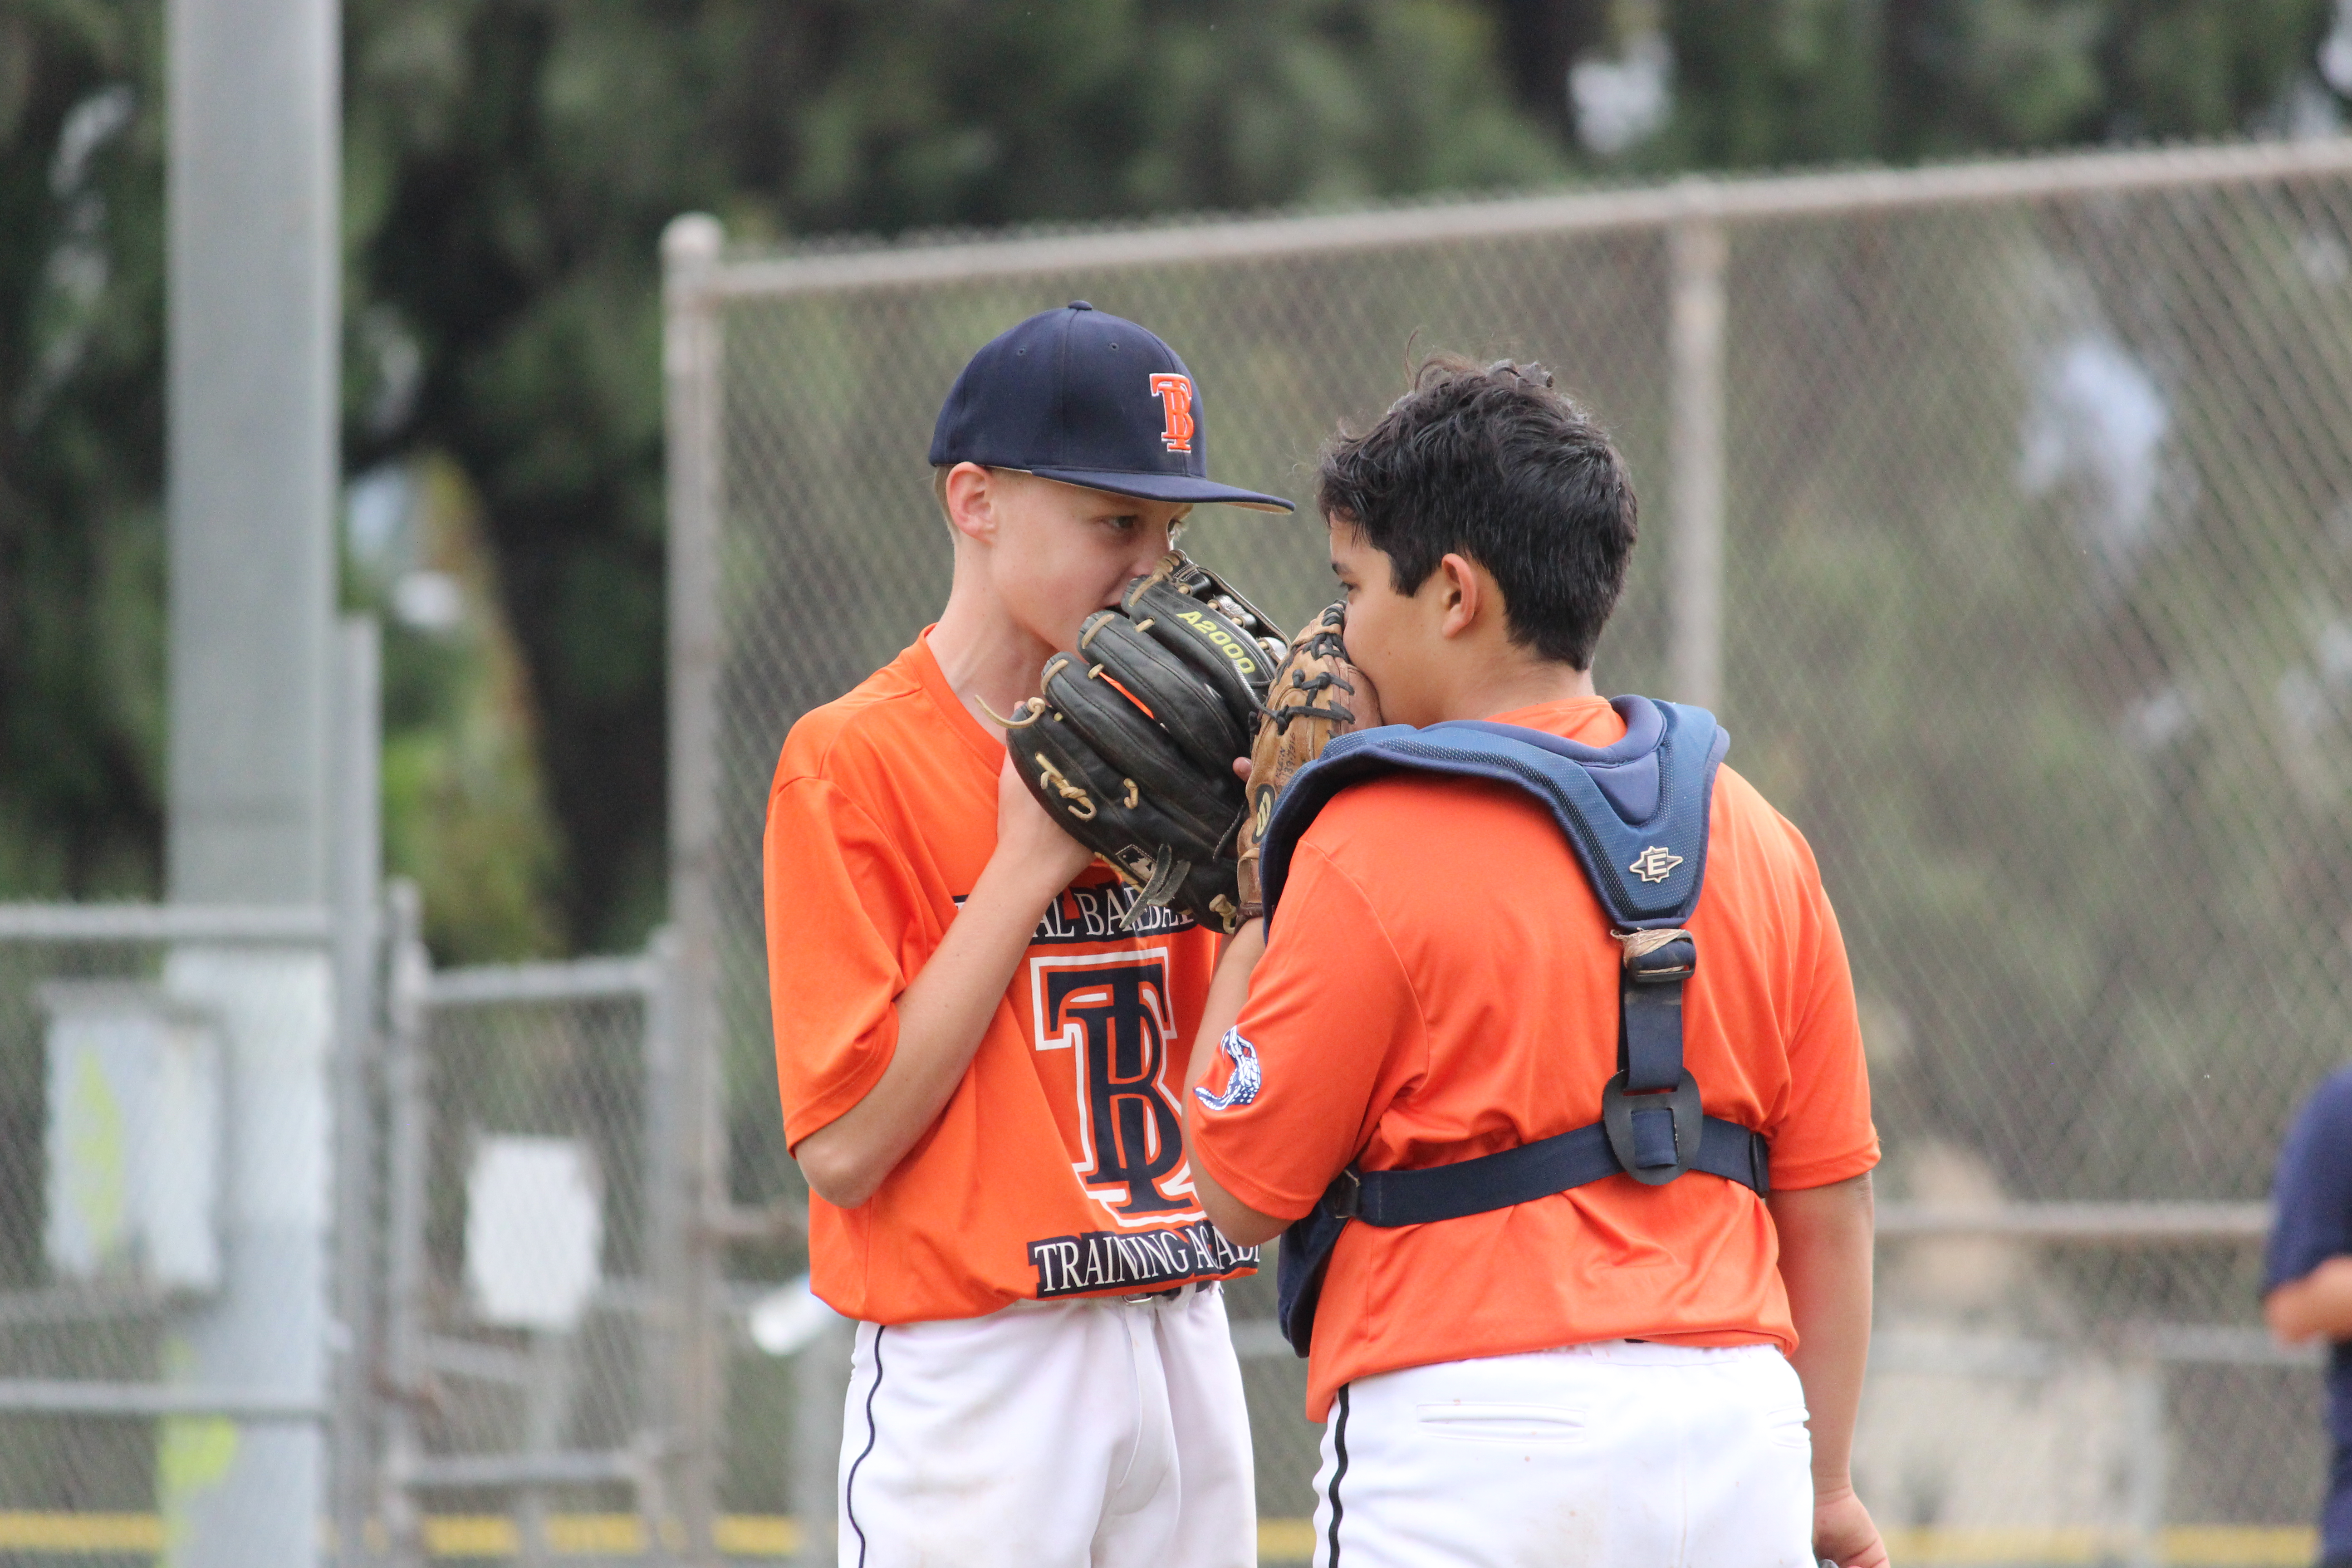 pitcher catcher meeting on the mound